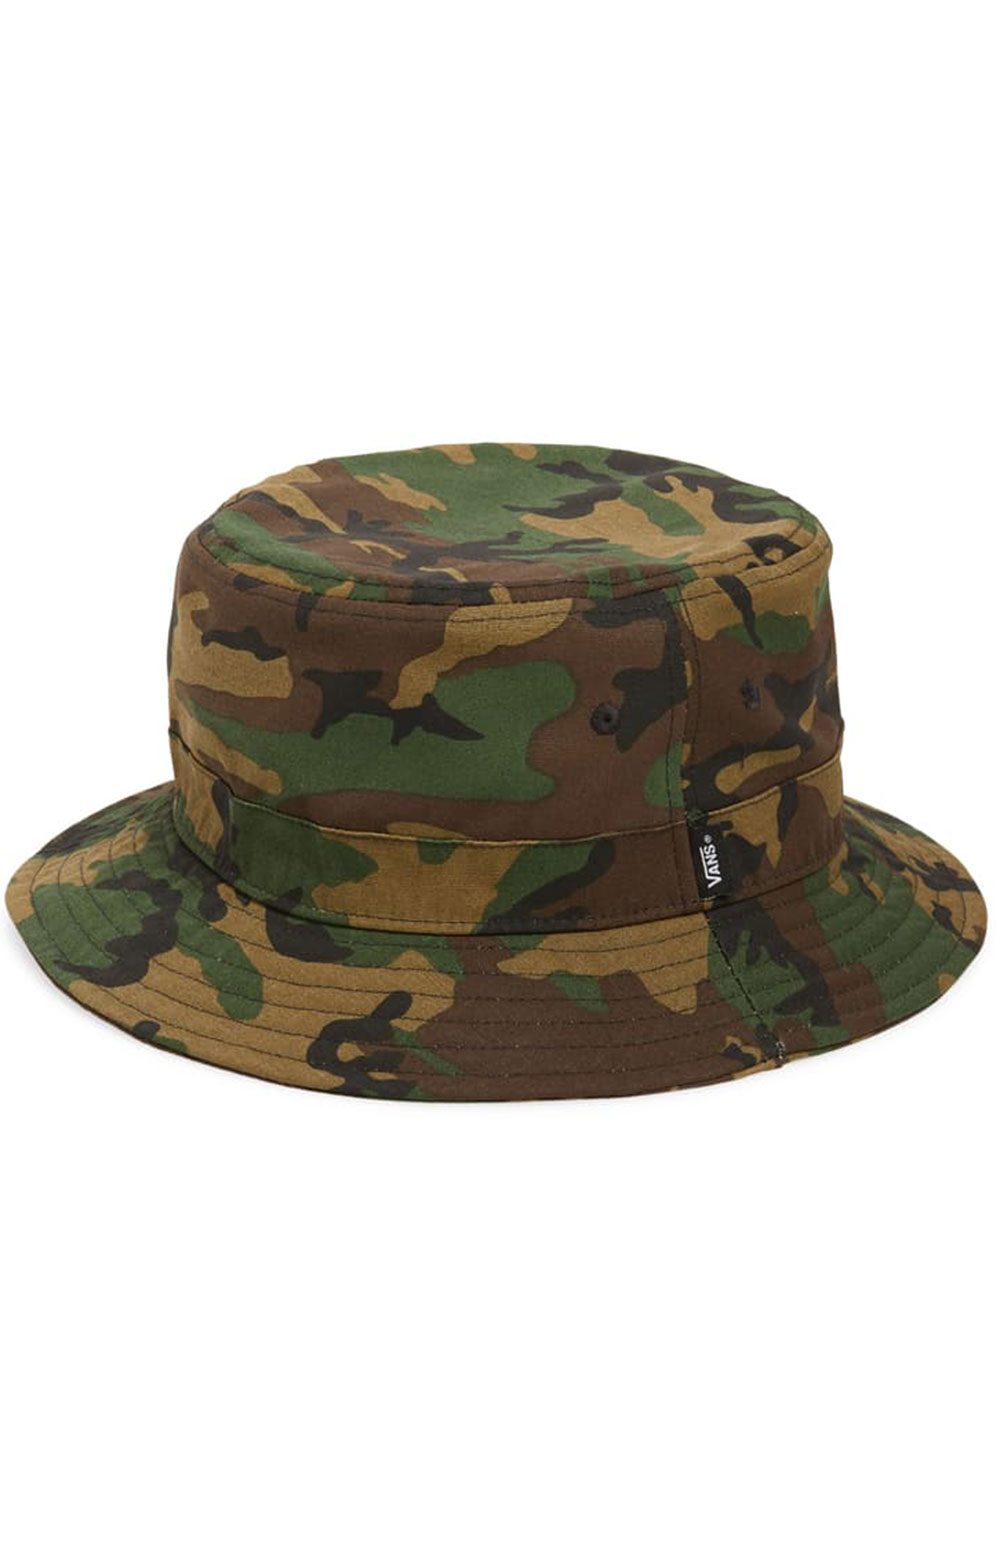 Undertone Bucket Hat - Classic Camo